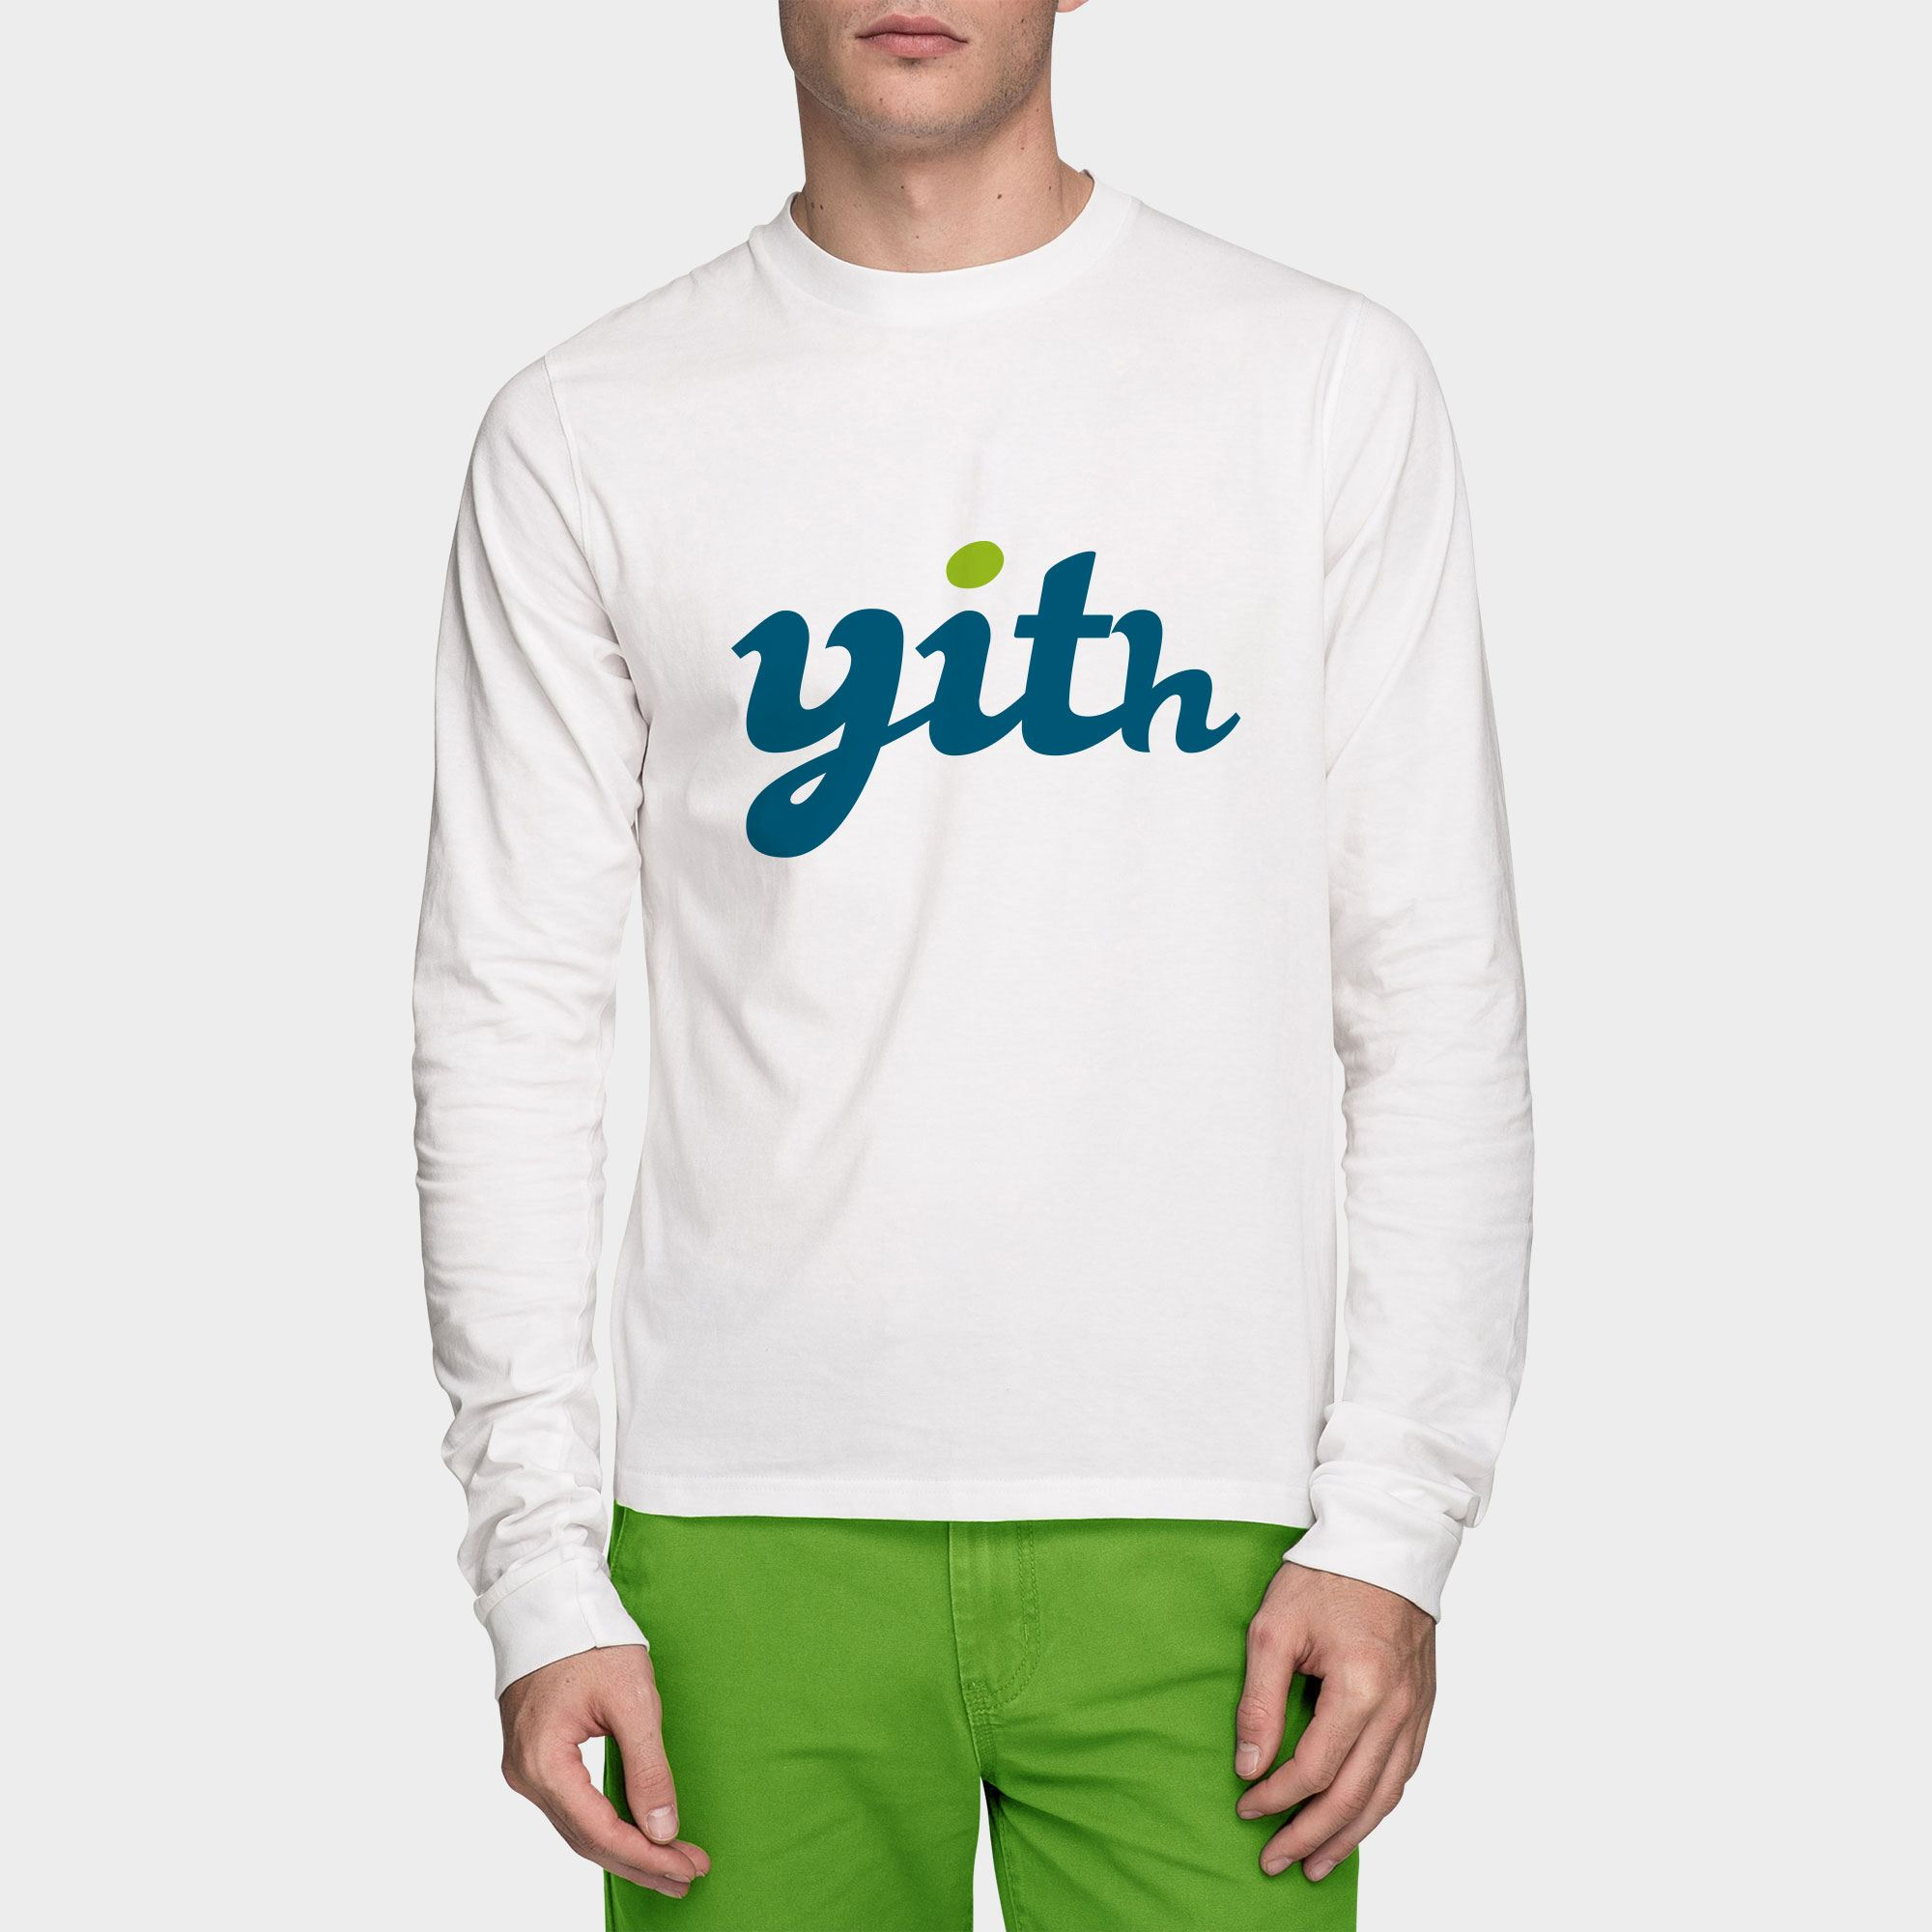 YITH Long Sleeve